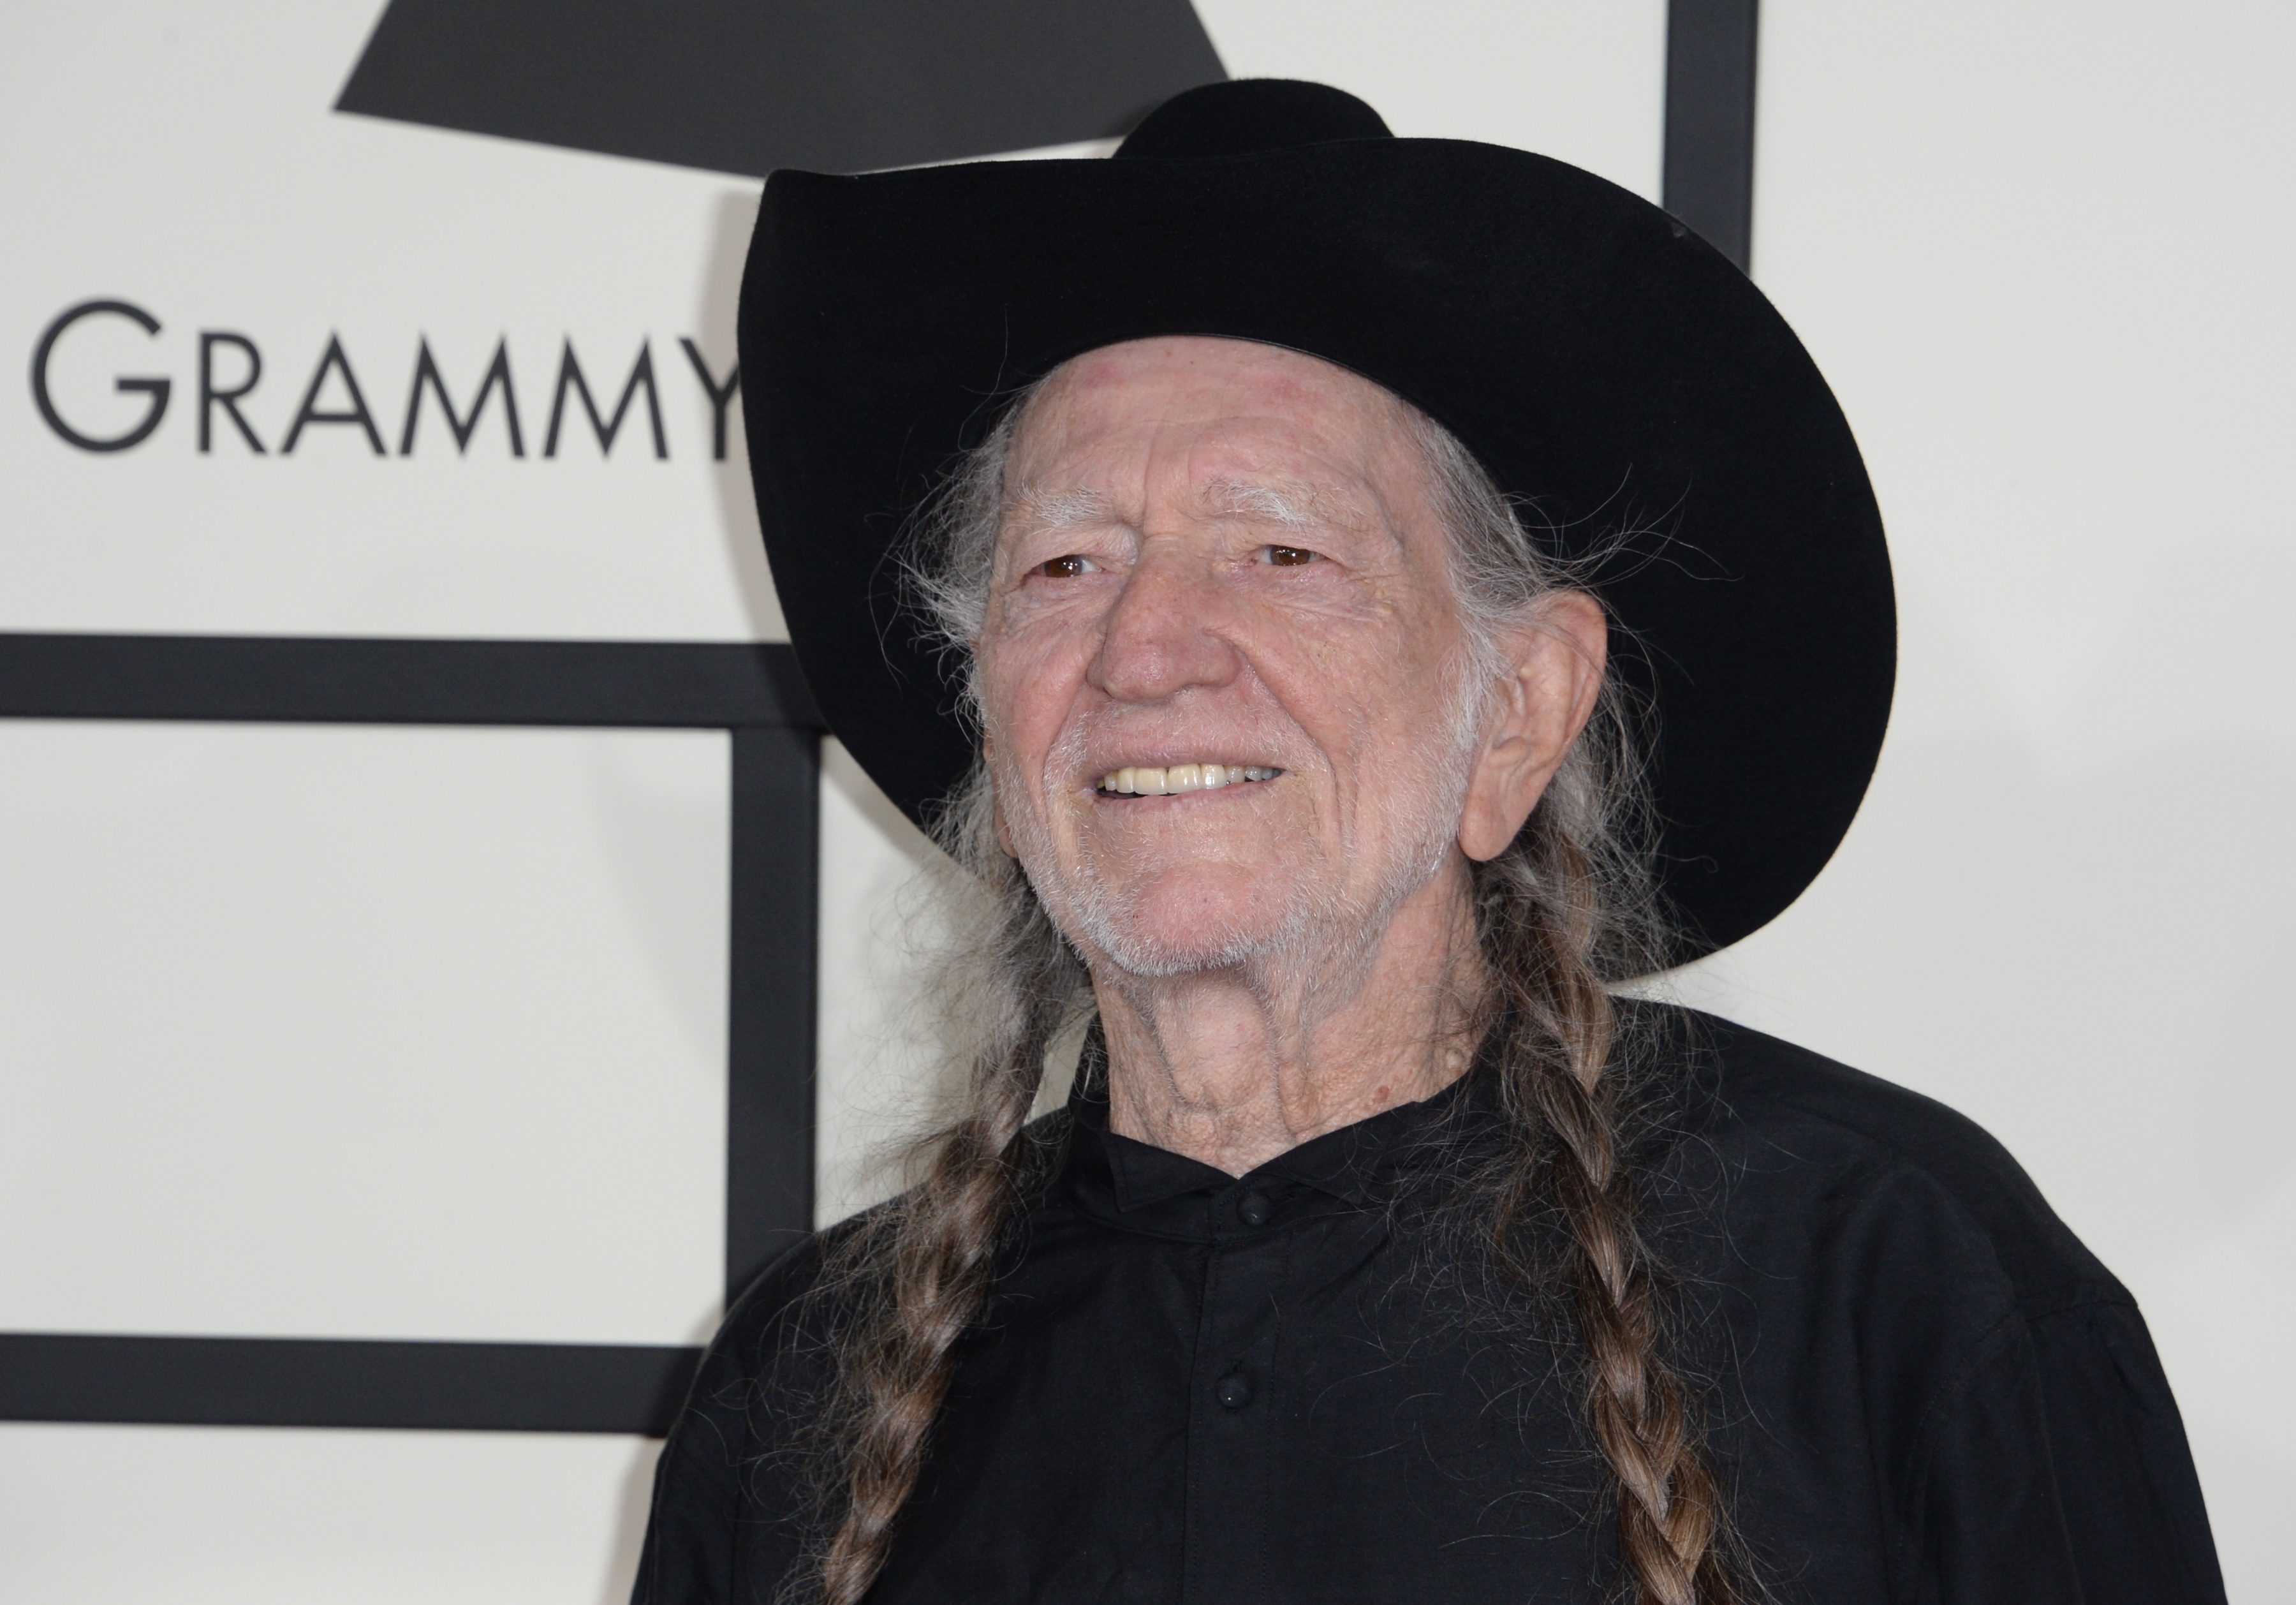 Willie Nelson says he has stopped smoking because it almost killed him